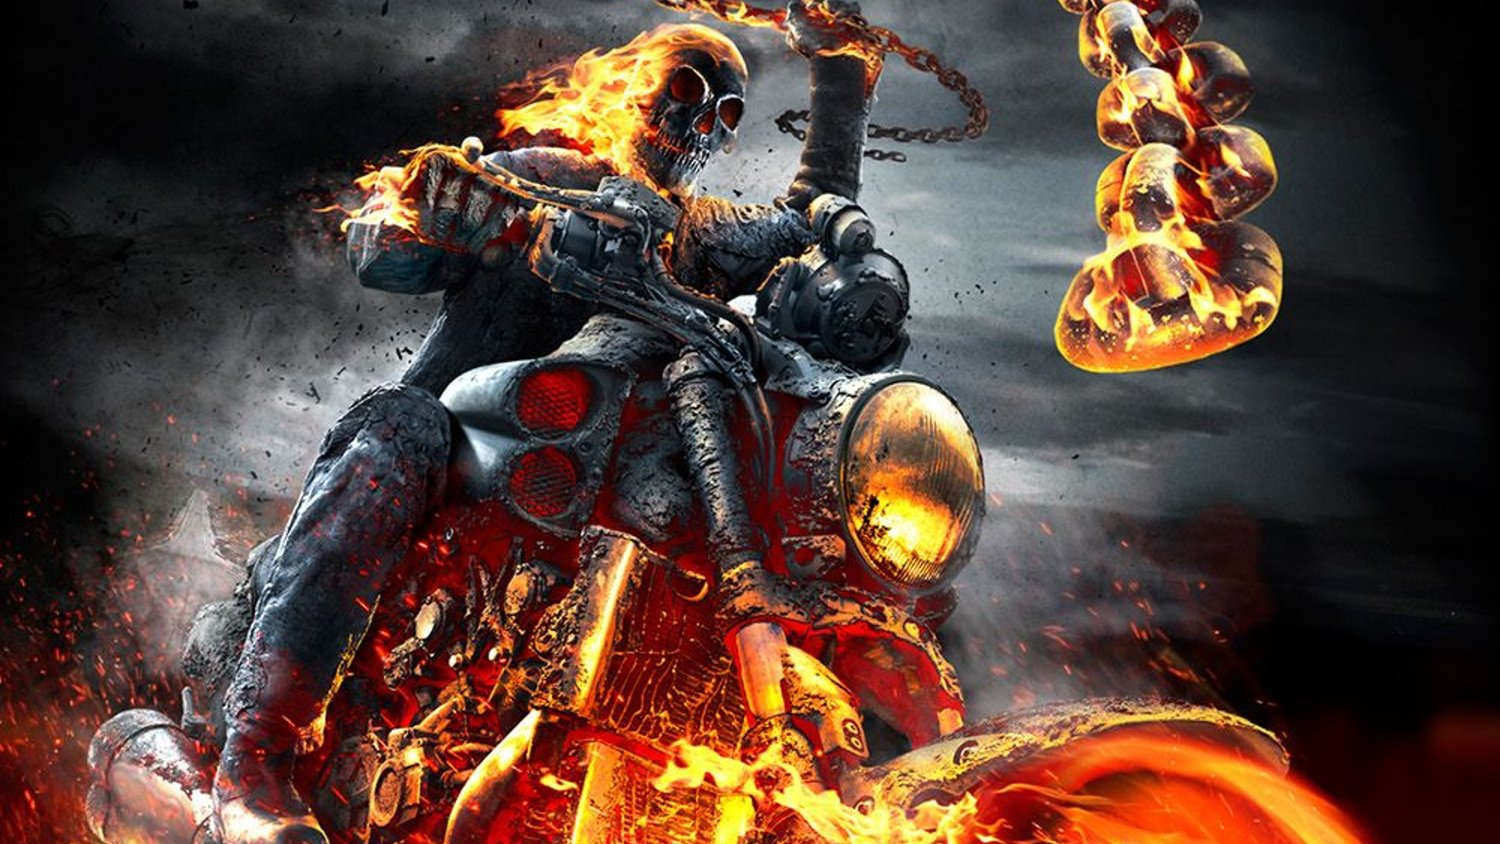 Nicolas Cage Says An R Rated Ghost Rider Film Would Be Enormously